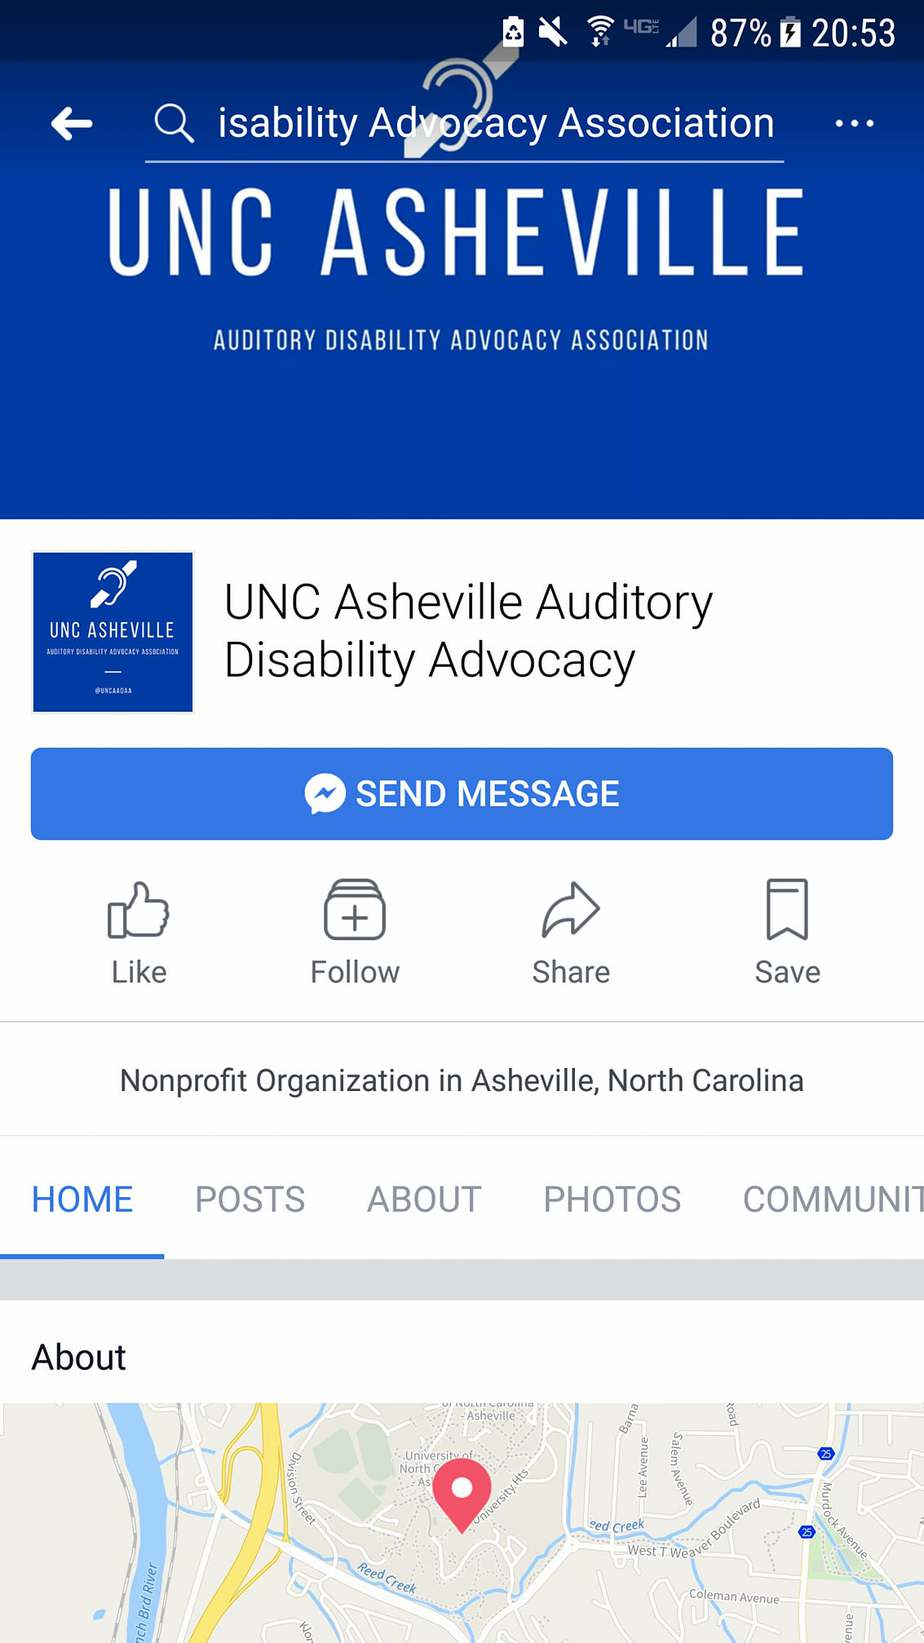 UNC Asheville is a disability-friendly campus and has several student organizations catering to the need of its small community of students with disabilities. UNCA Auditory Disability Advocacy is only one example of such student groups.